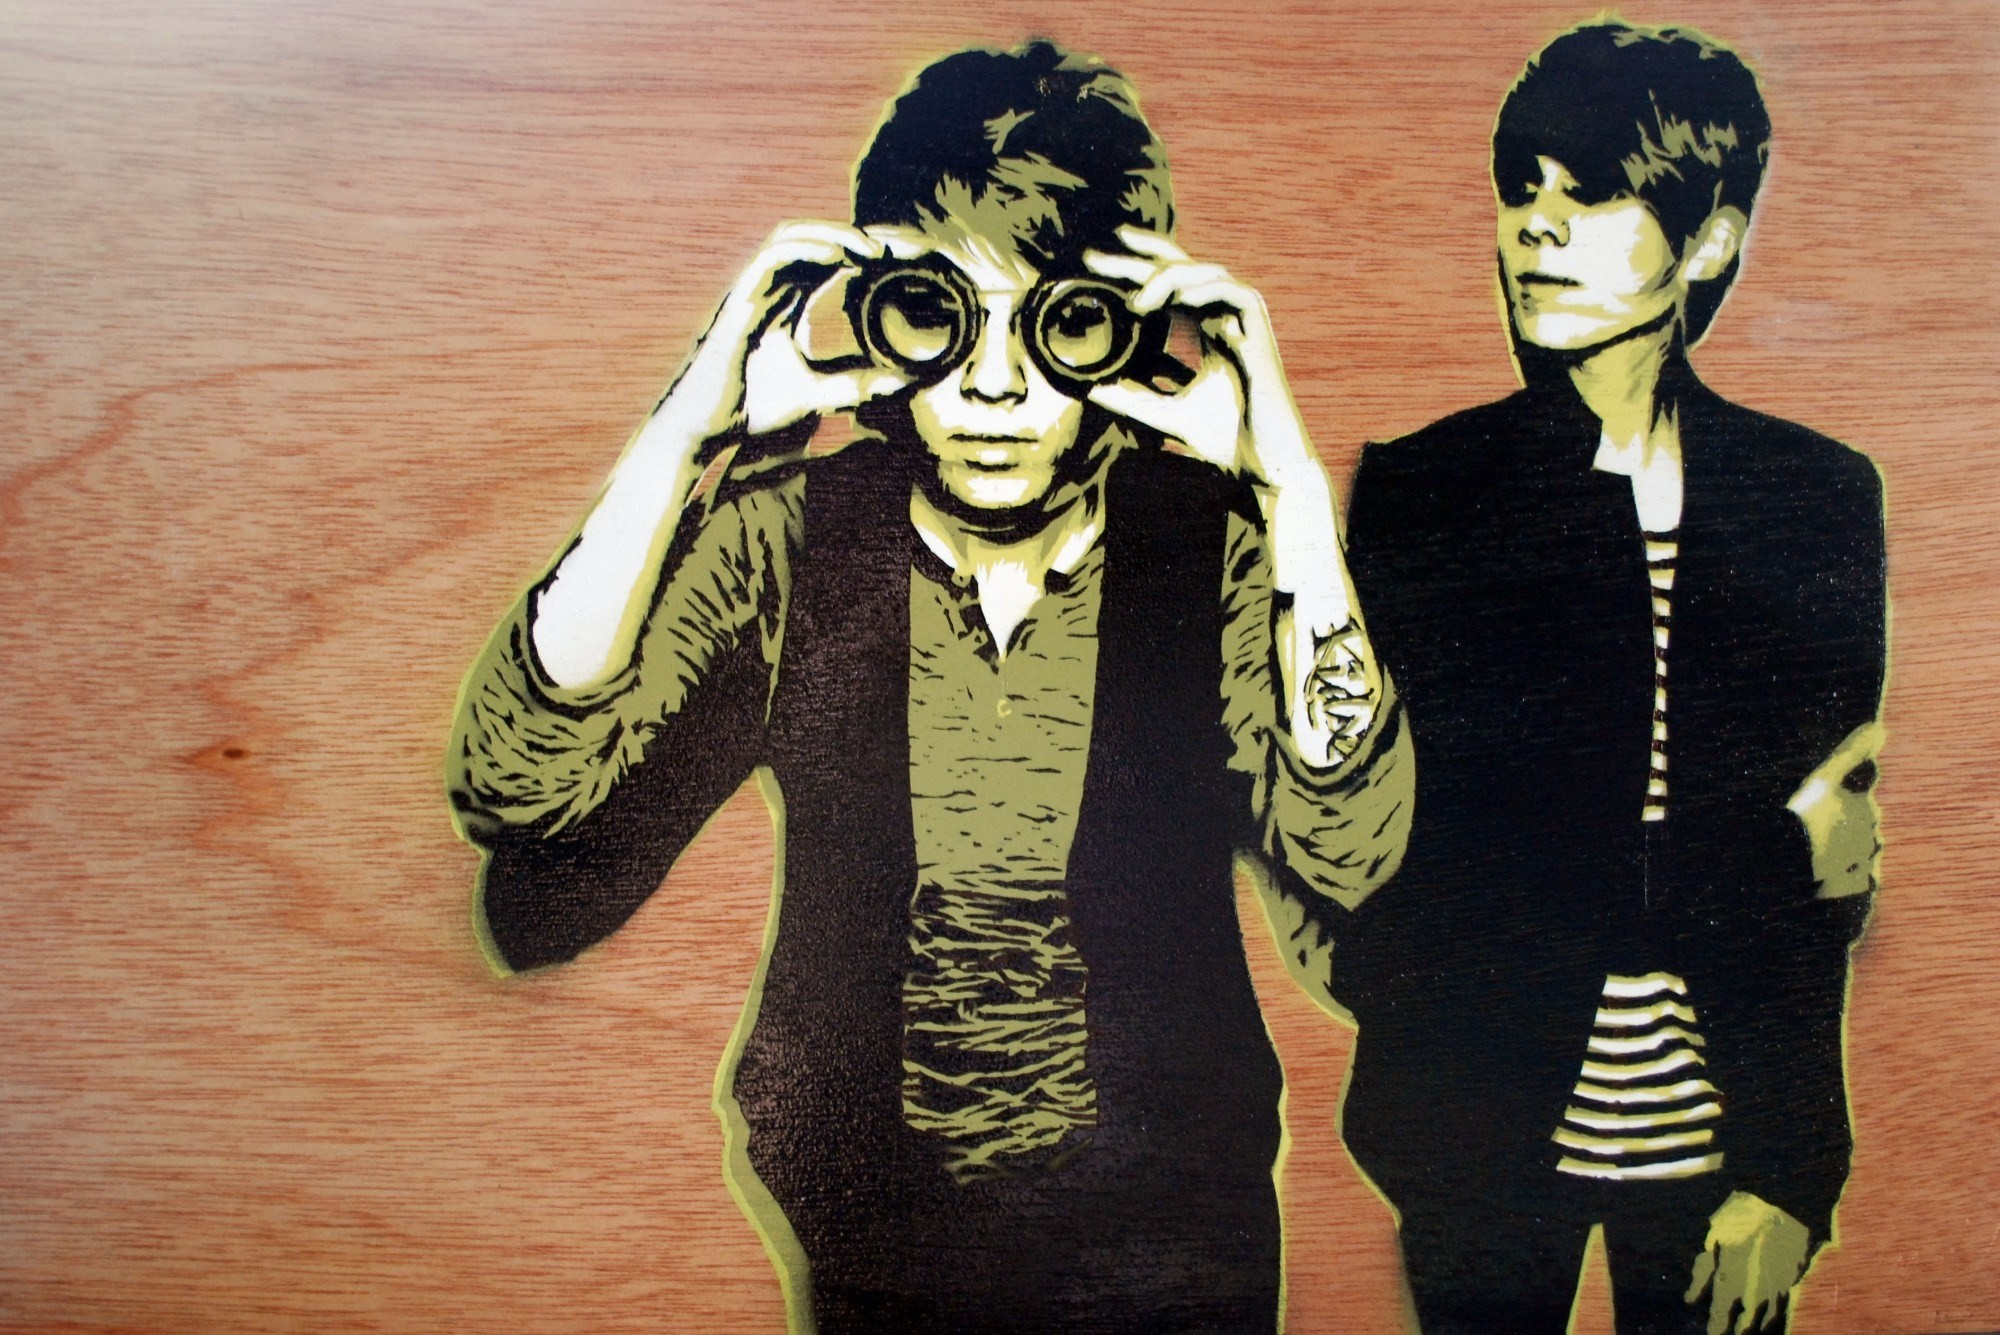 2000x1335 ... Best Tegan And Sara Twitter Wallpaper Free Download Wallpapers -  Download Free Cool Wallpapers for PC